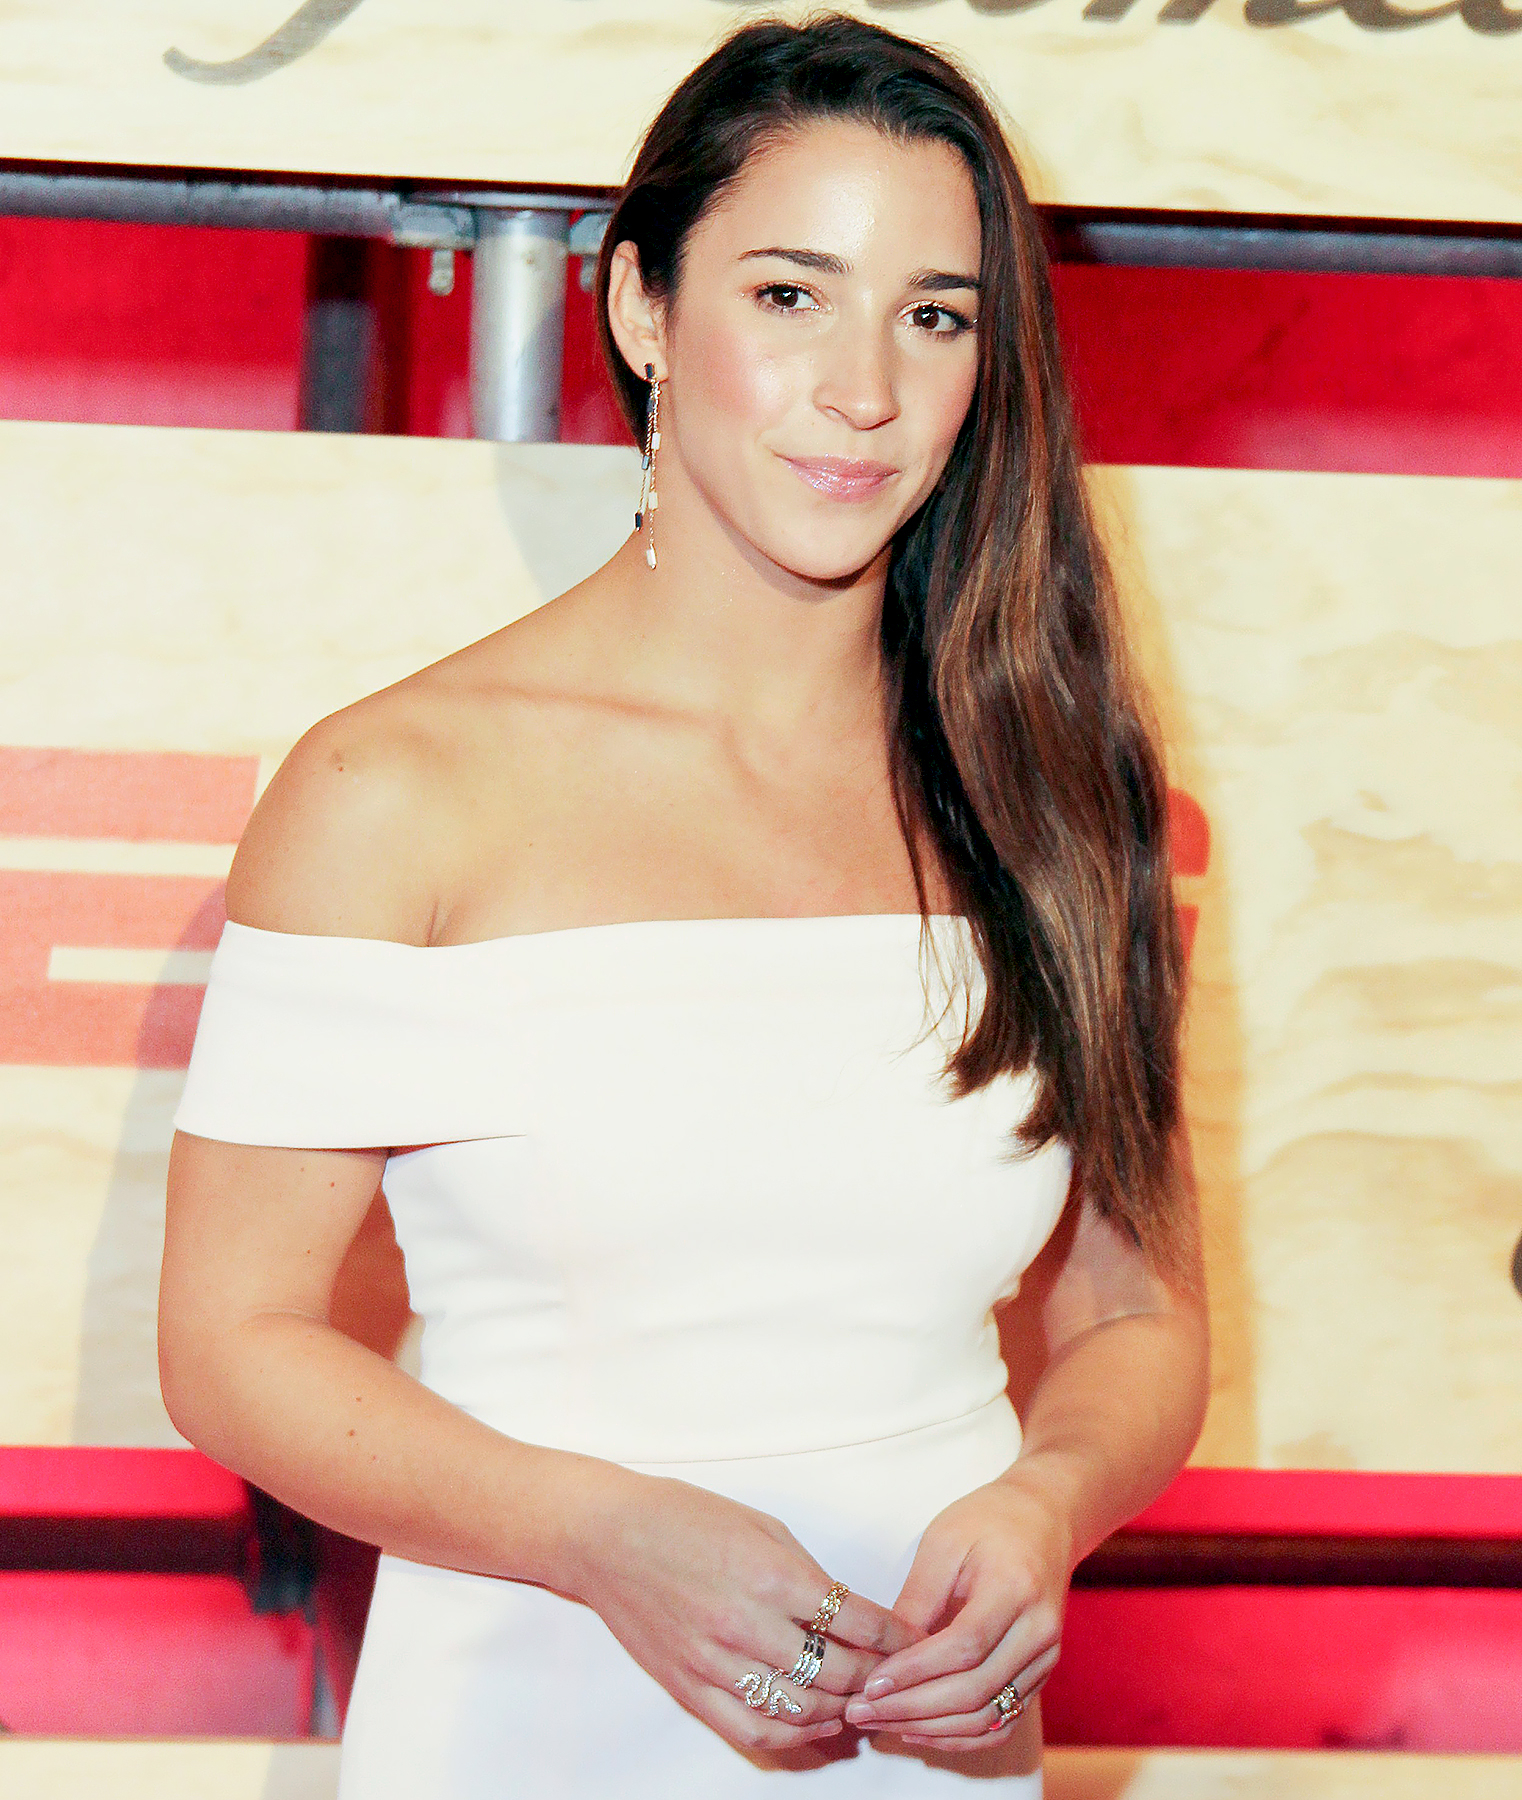 Aly Raisman arrives on the red carpet at 2017 ESPN: The Party, before the Super Bowl in Houston, Texas February 3, 2017.